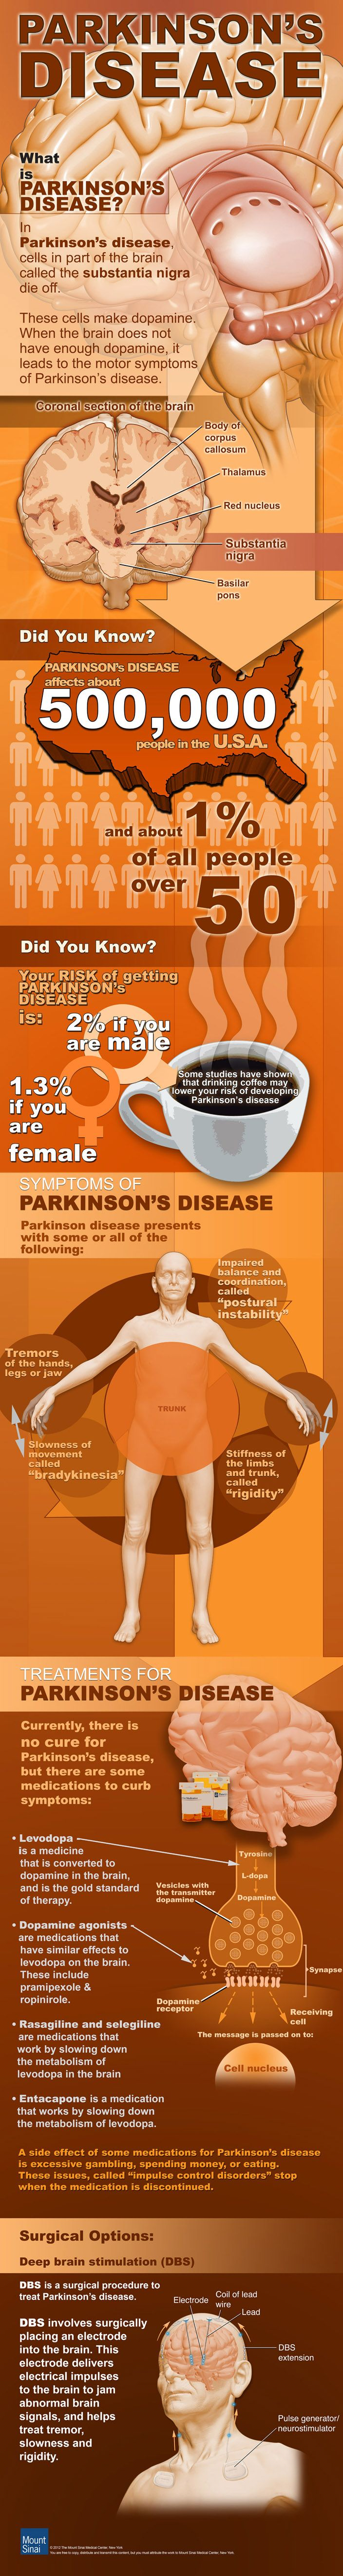 What is Parkinson's Disease, what is your Risk, and what are the Symptoms & Treatment options? Infographic: http://shar.es/Gfw2p